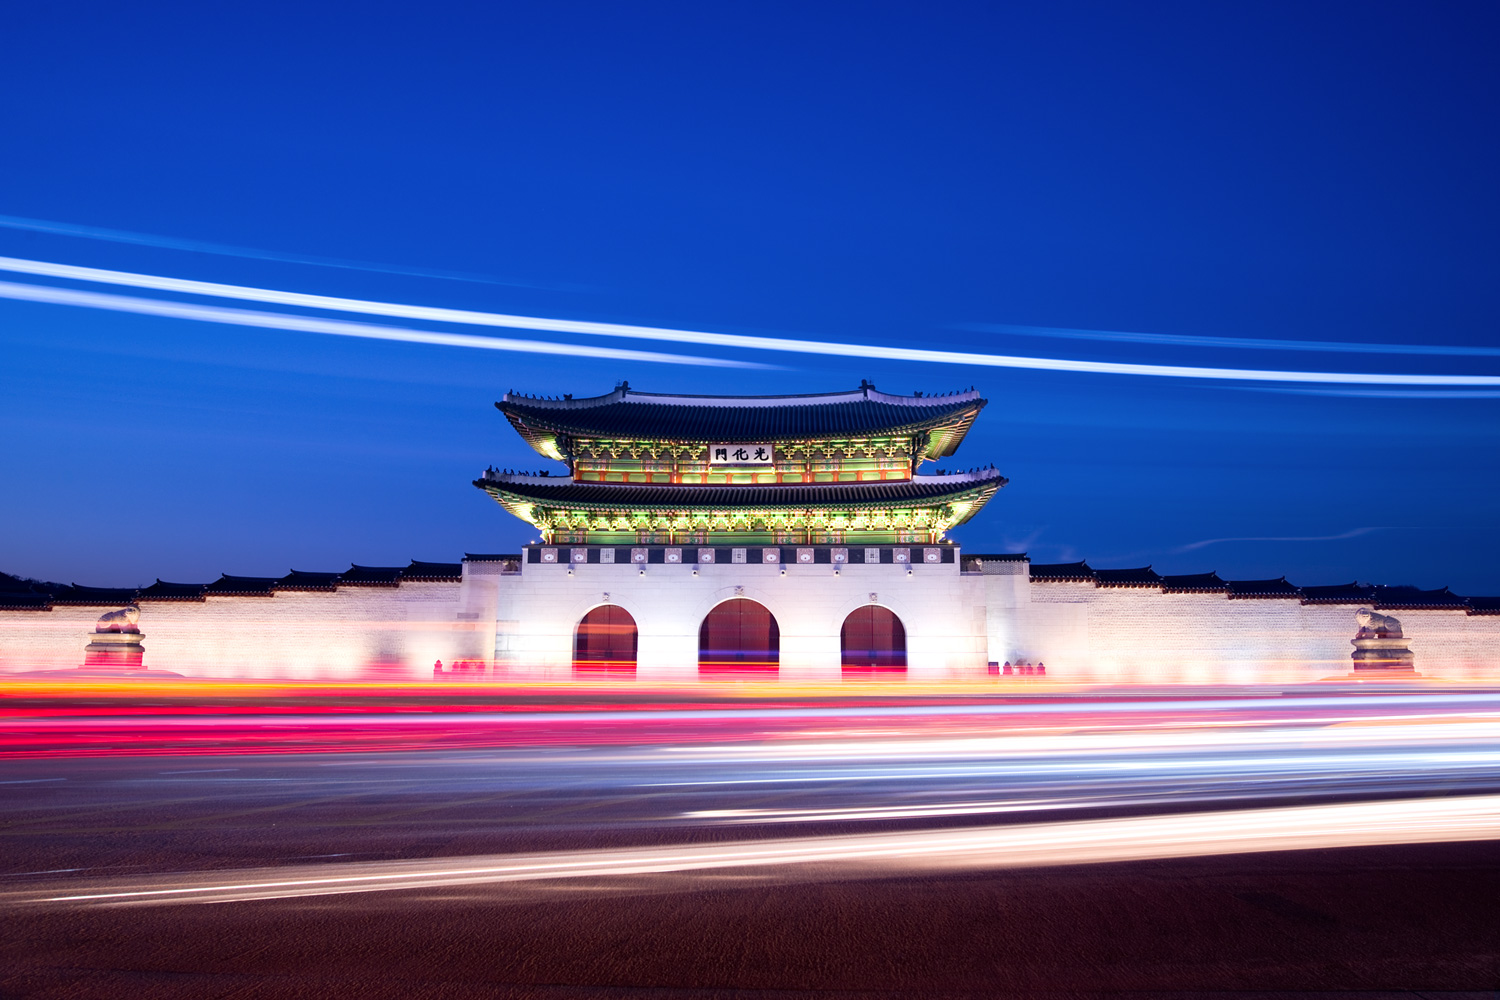 Gyeongbokgung Palace (Korea) (24mm, f/8, 30 seconds, ISO100)